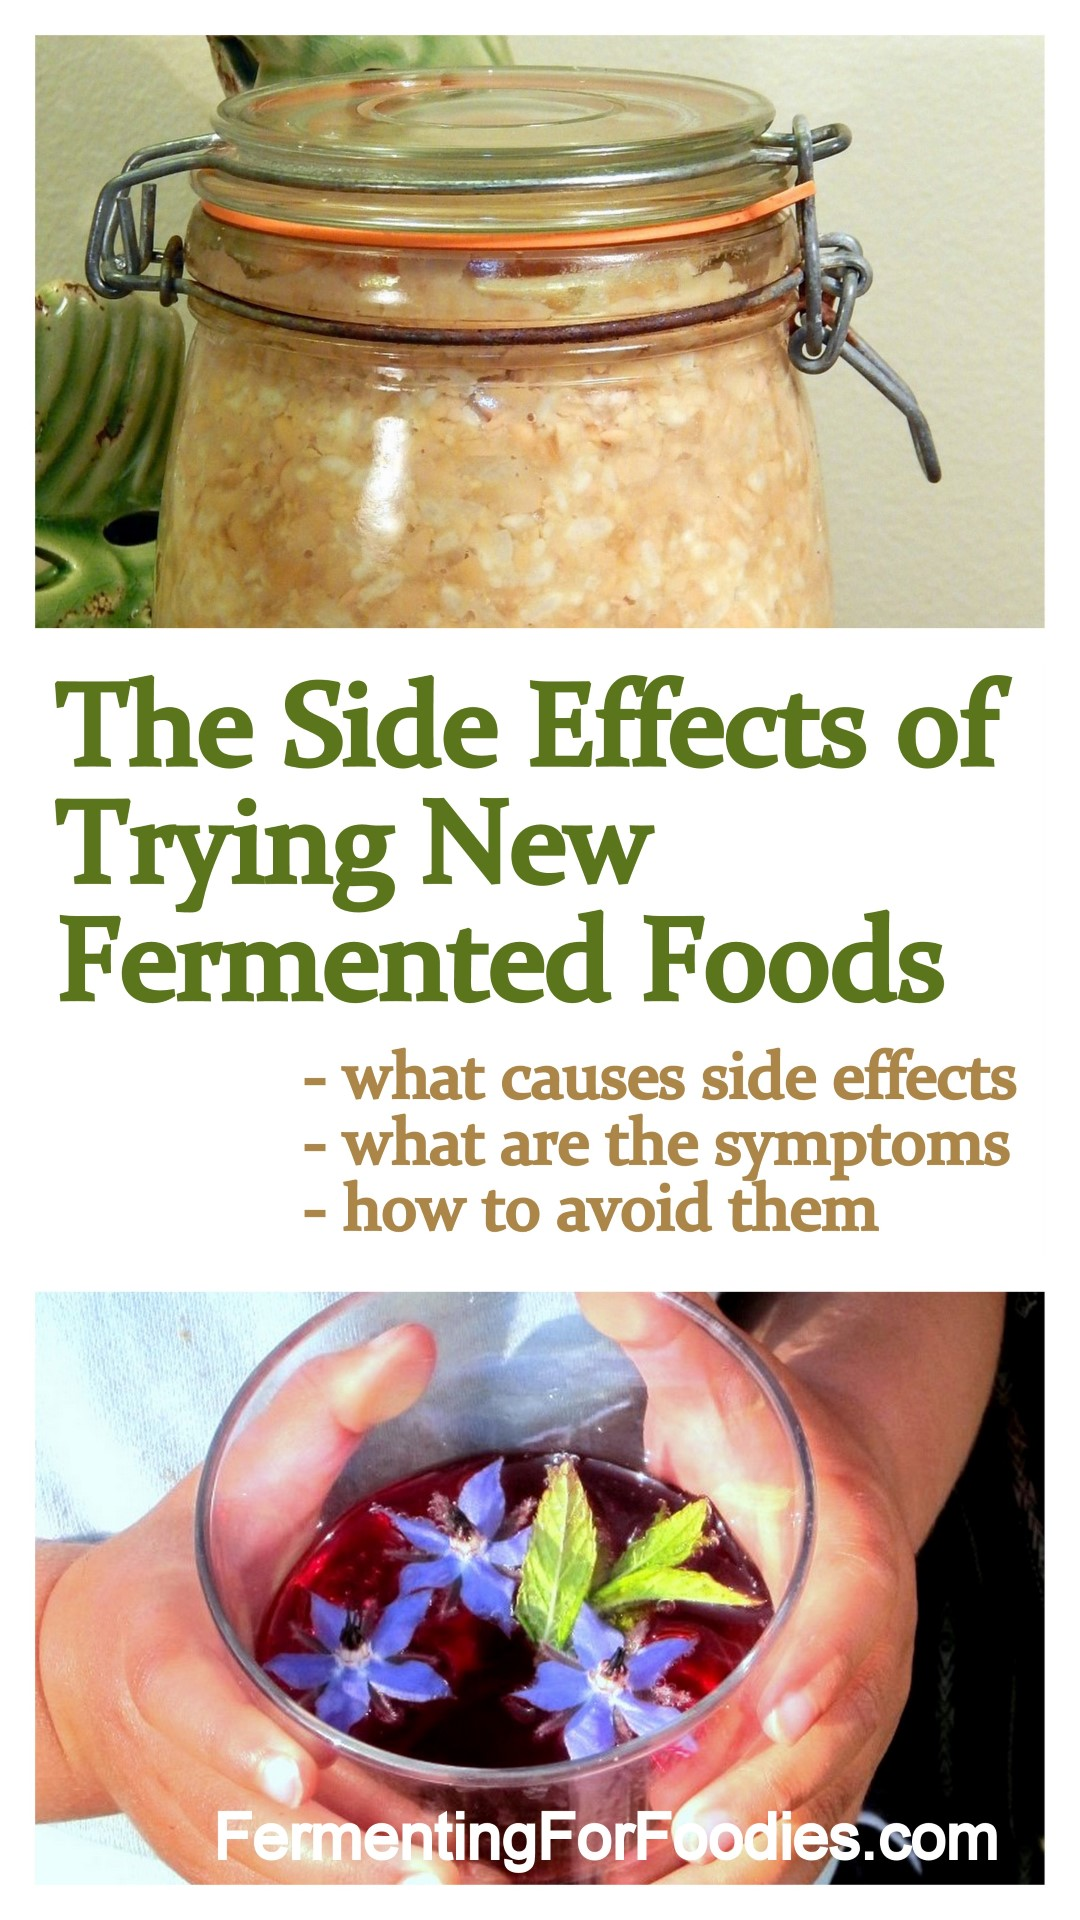 Fermented foods can cause gas, bloating, nausea. Find out why!